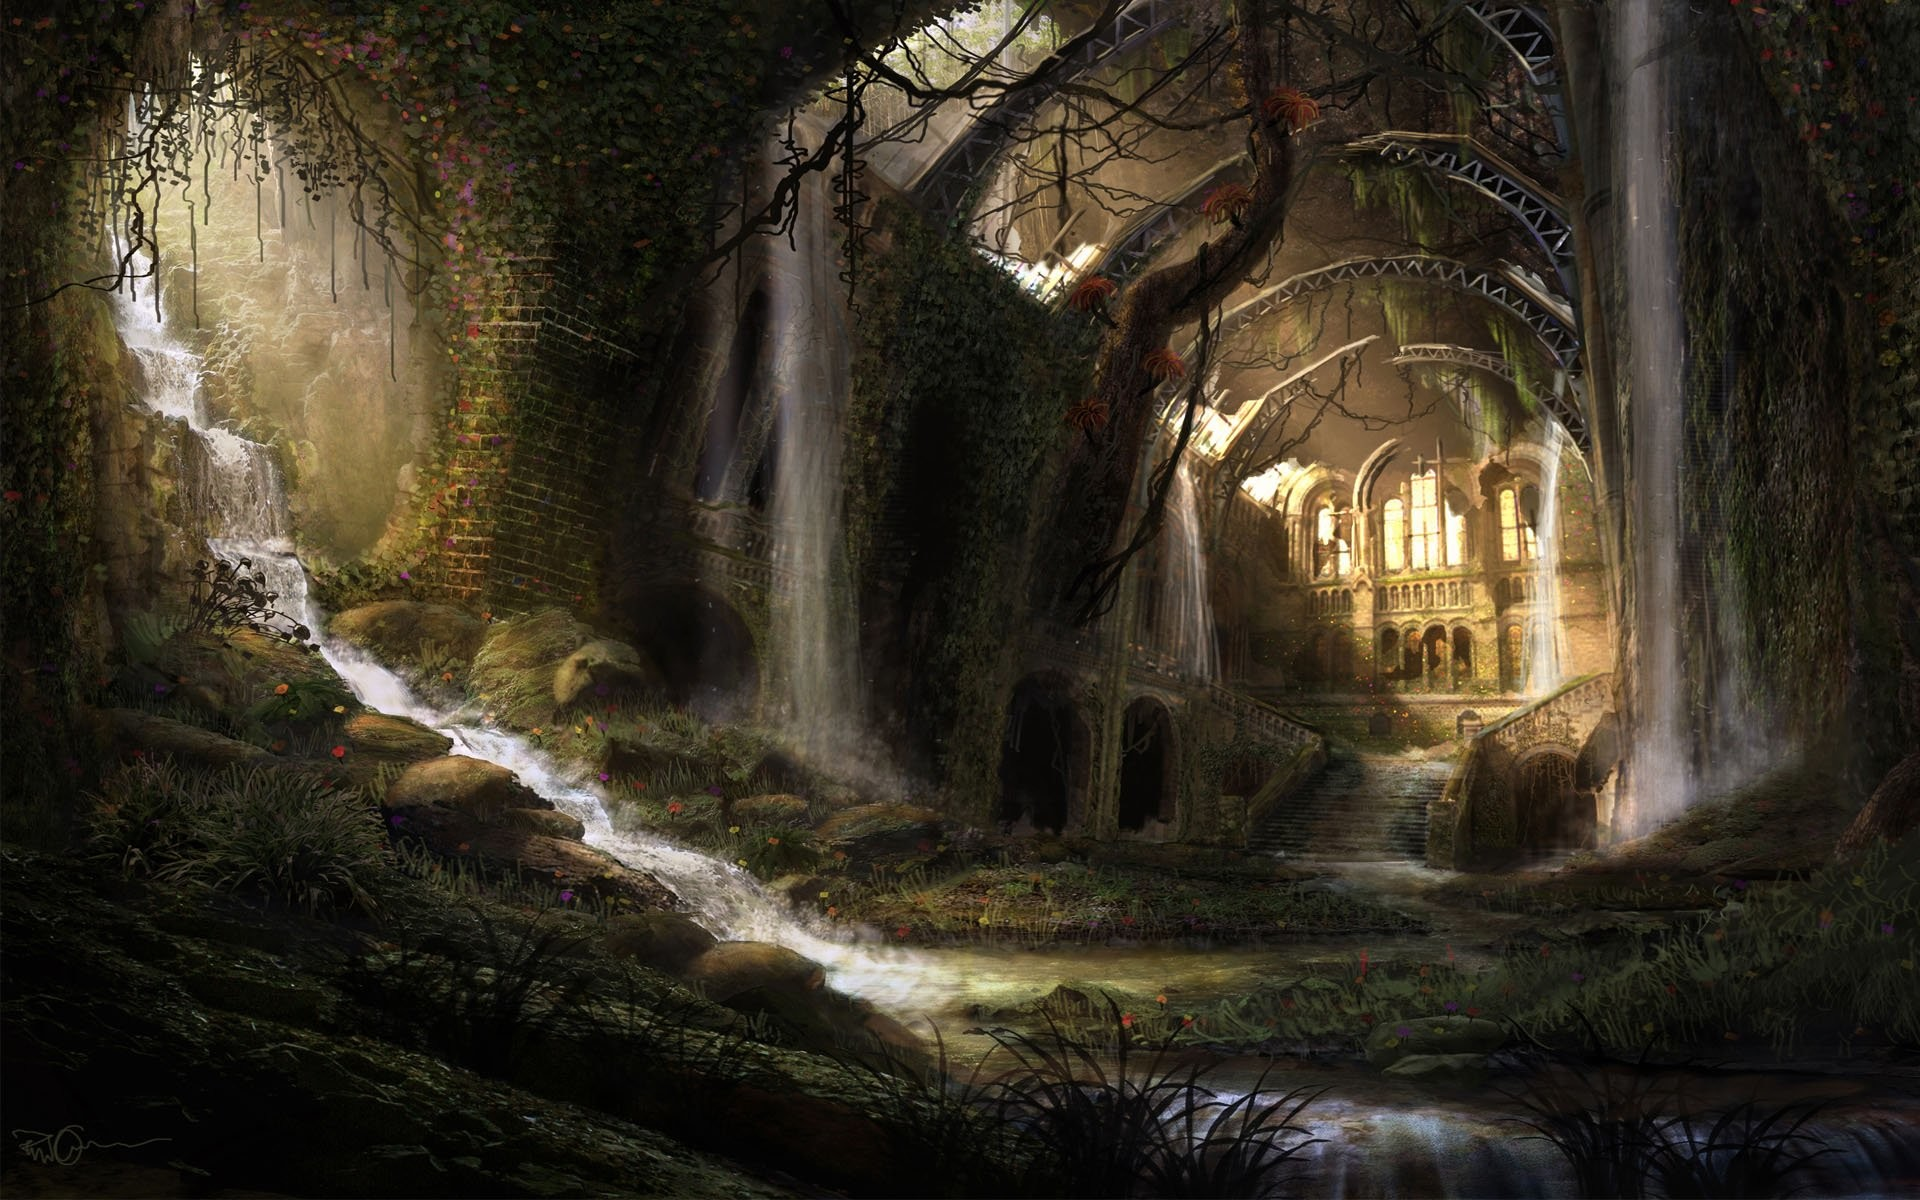 1920x1200 Fantasy HD Wallpaper Widescreen | Fantasy Hd Wallpapers Widescreen   - Free Download Wallpaper .